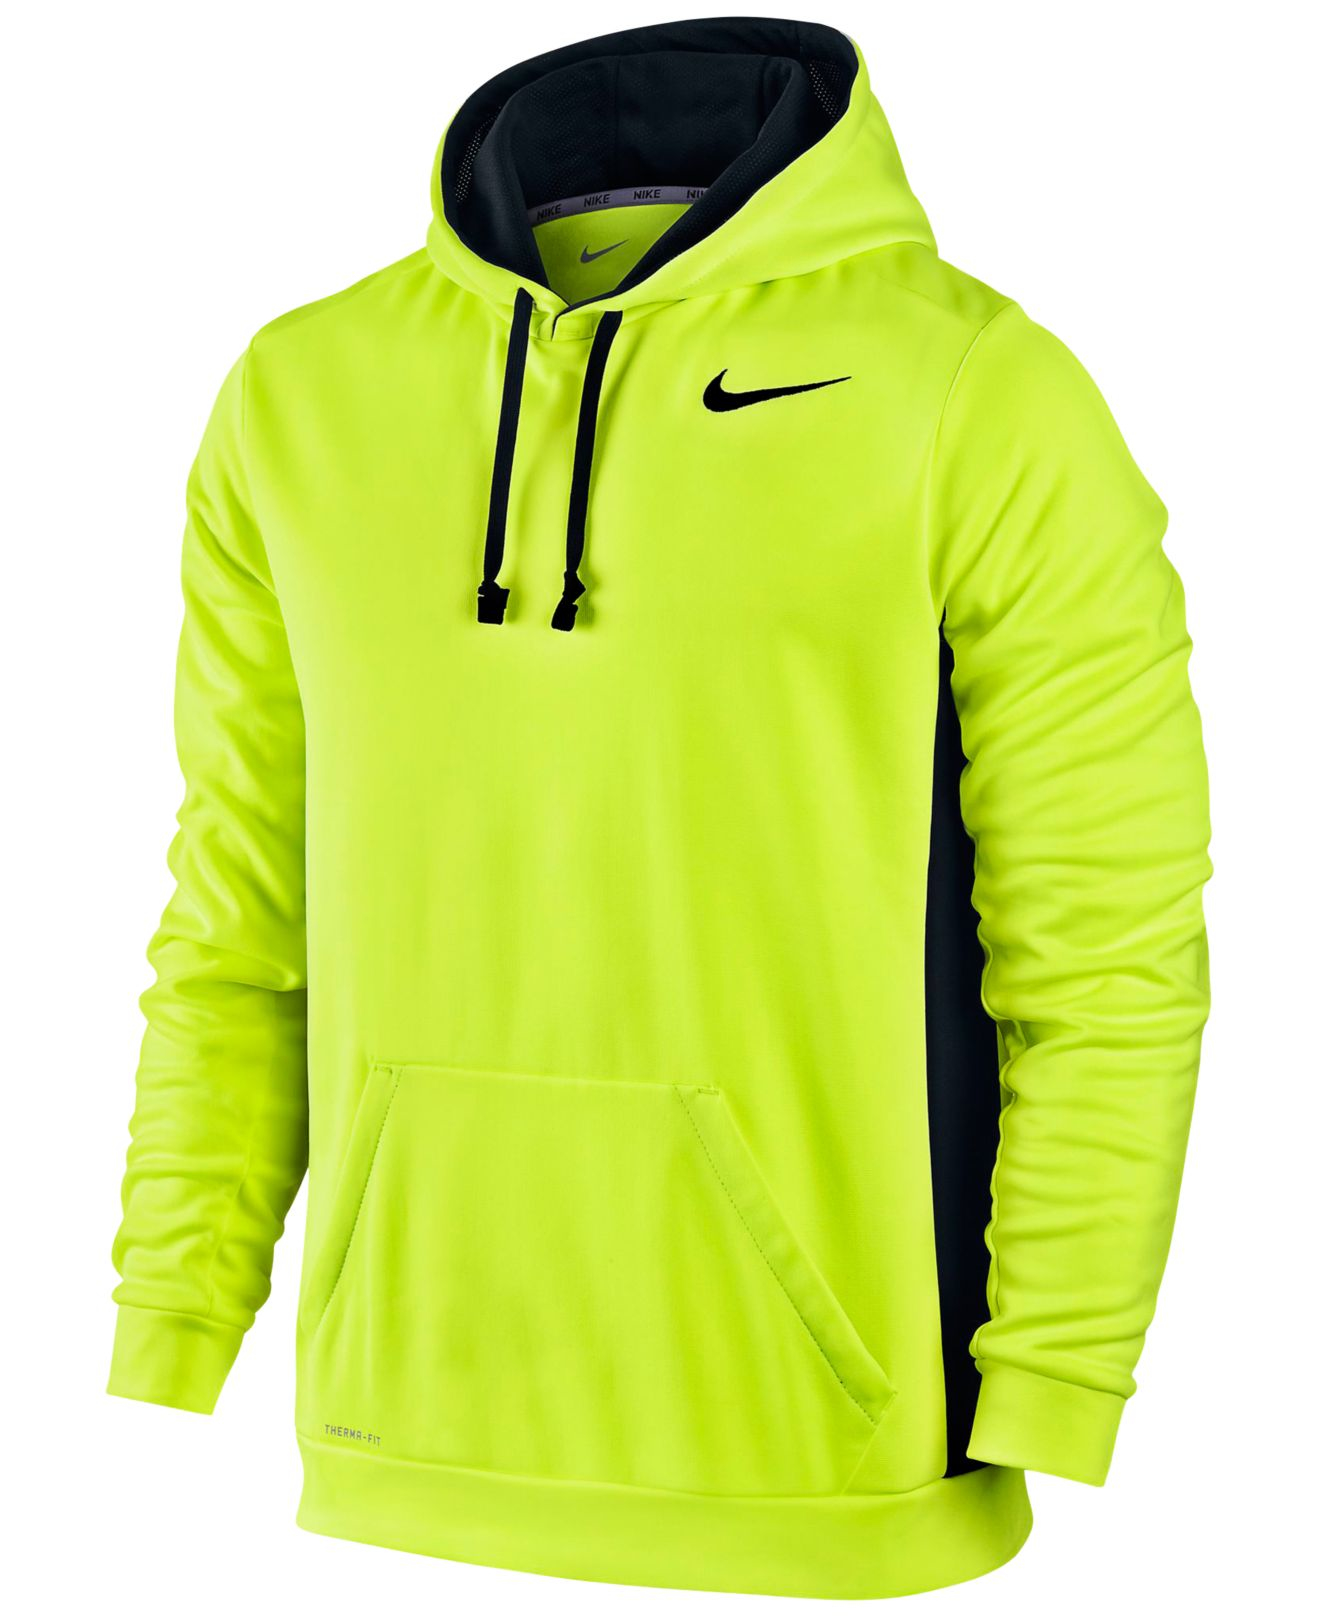 127db169cc11 Lyst - Nike Men s Ko 3.0 Therma-fit Pullover Hoodie in Green for Men